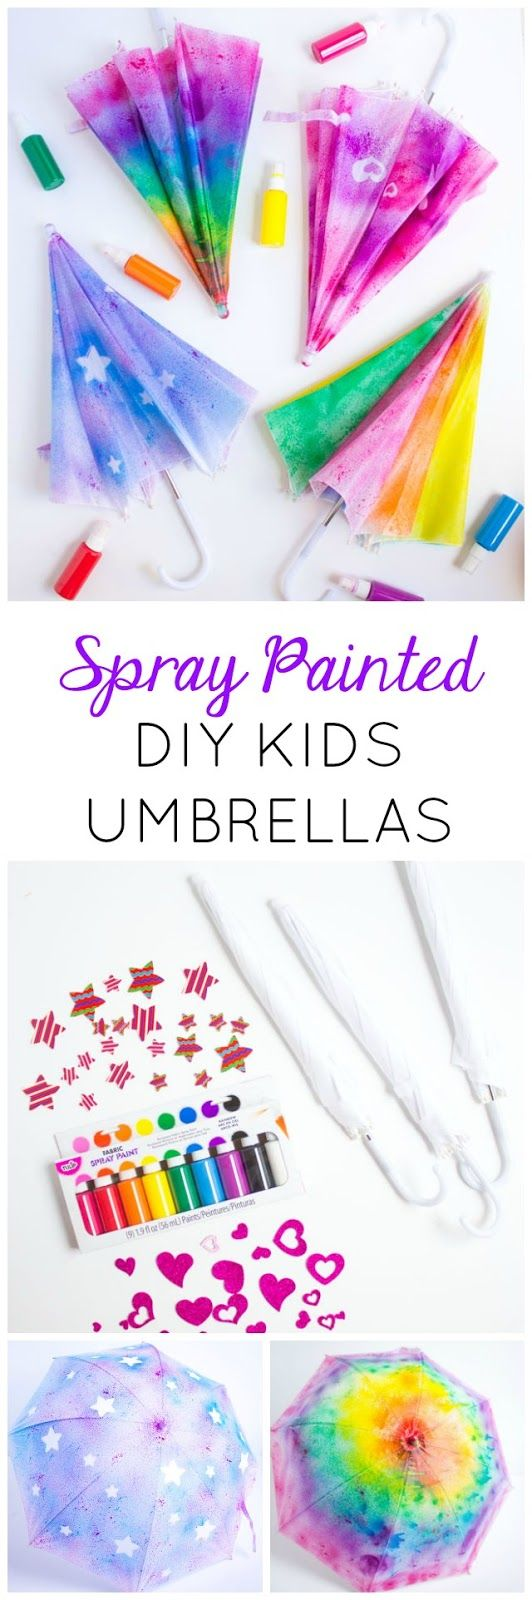 Make DIY kids umbrellas in a rainbow of colors with fabric spray paint!-What You'll Need:    DIY White Umbrellas  Tulip Fabric Spray Paint  Fabulous Foam Self-Adhesive Hearts  Fabulous Foam Self-Adhesive Stars